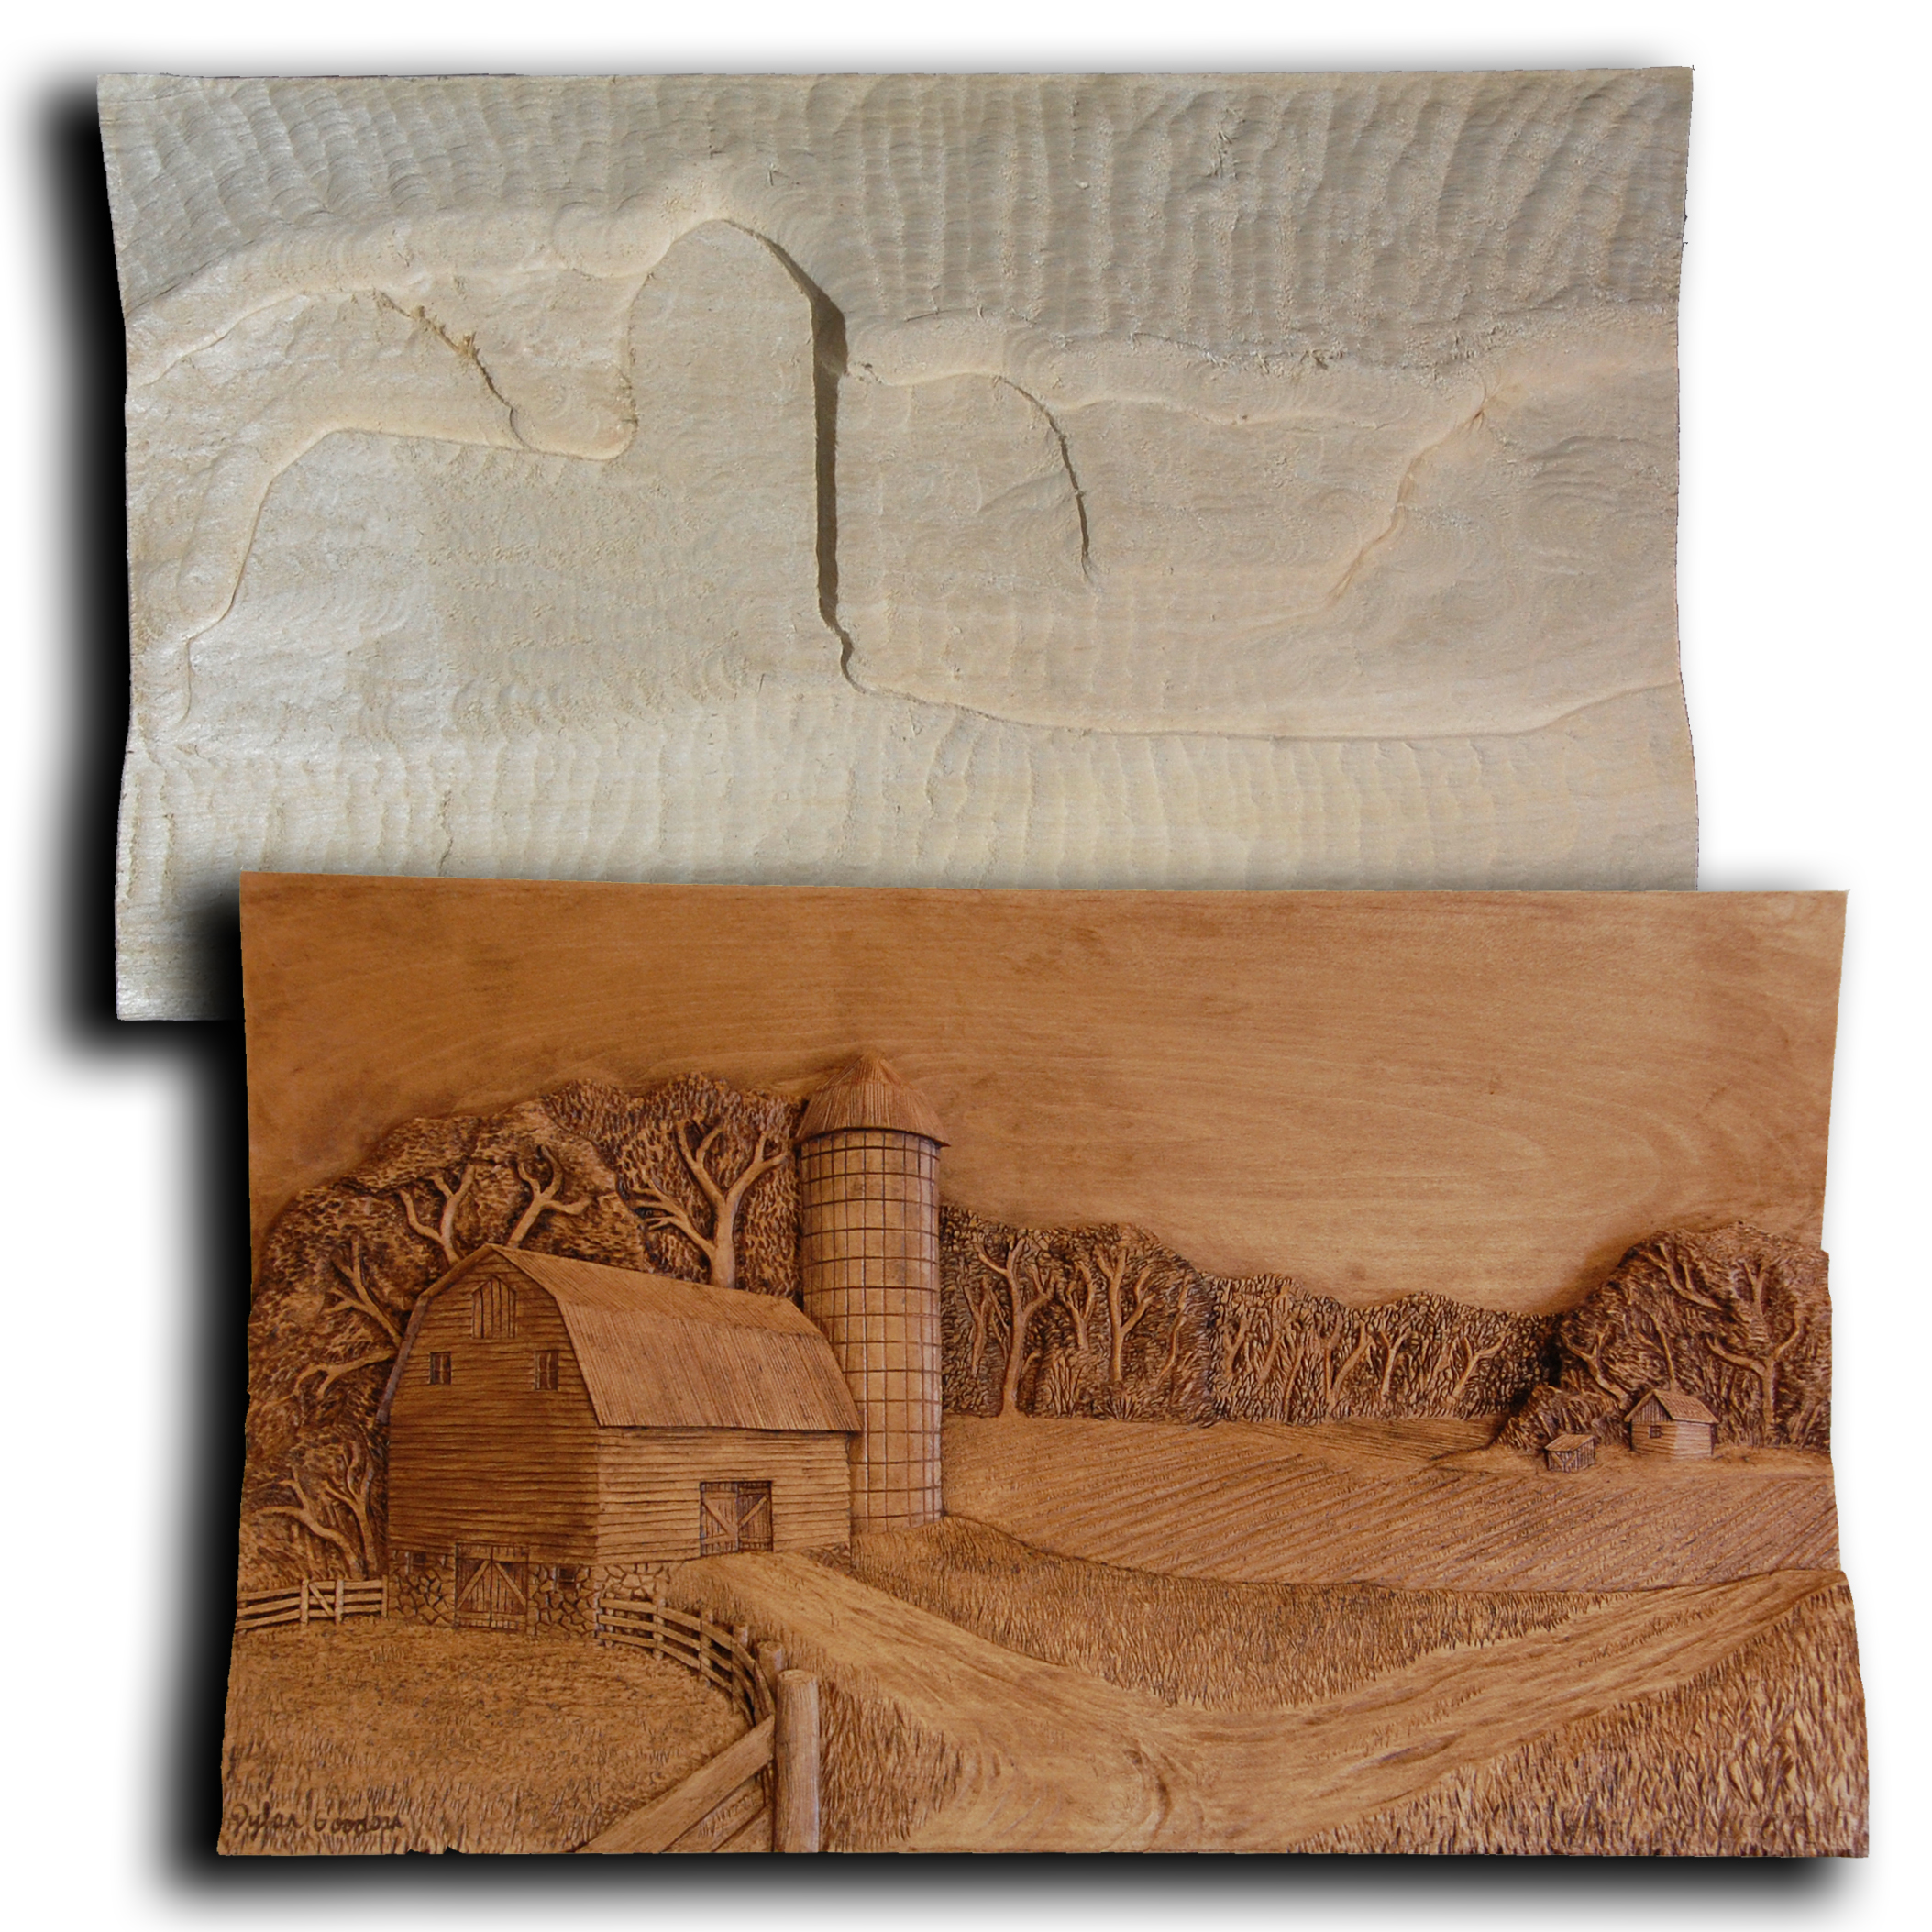 Lighthouse farms rough out wood carvings by dylan goodson